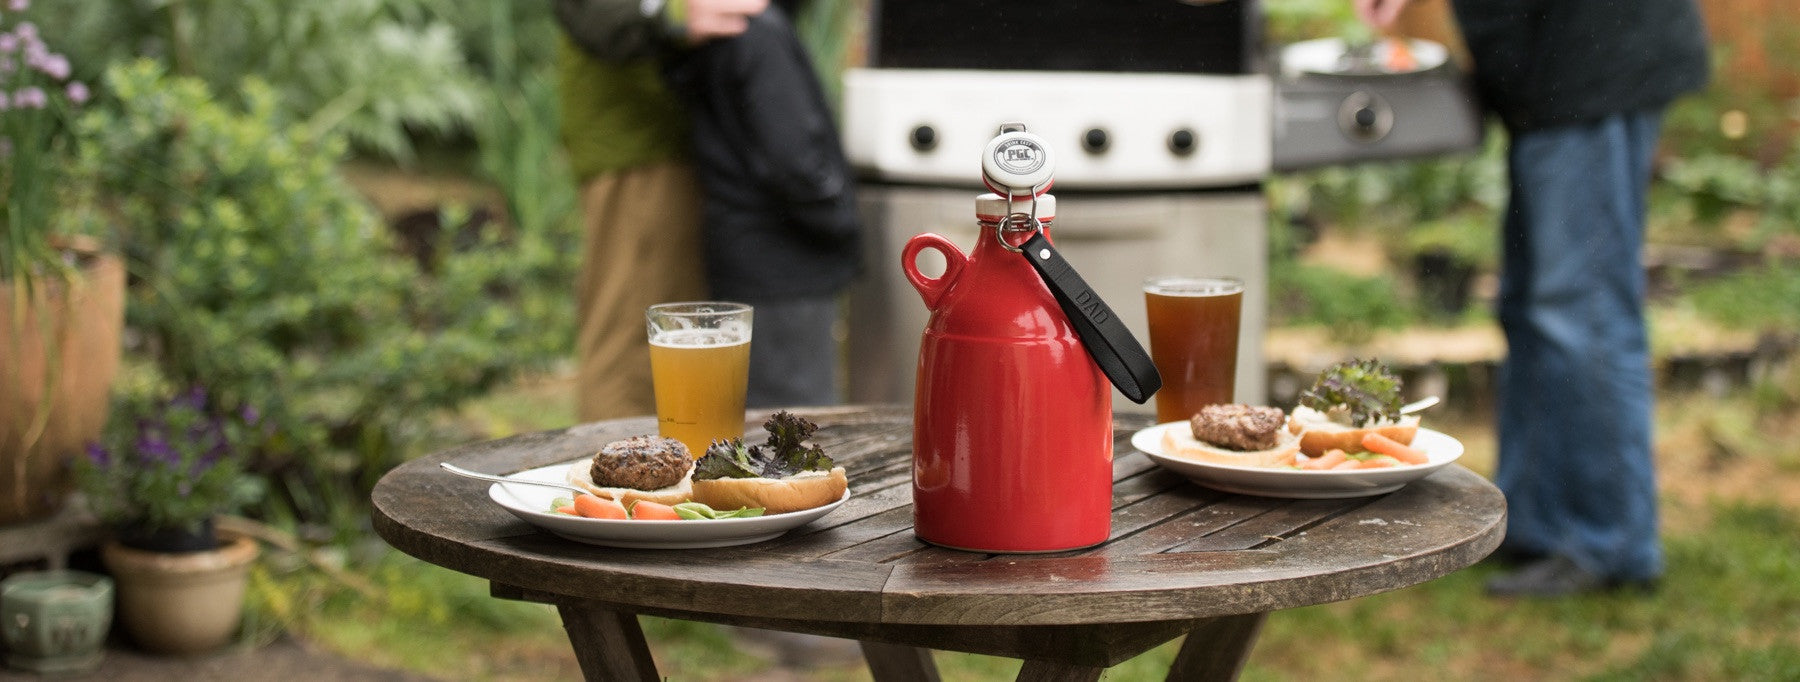 All Beer Growlers for Sale + Growler Accessories